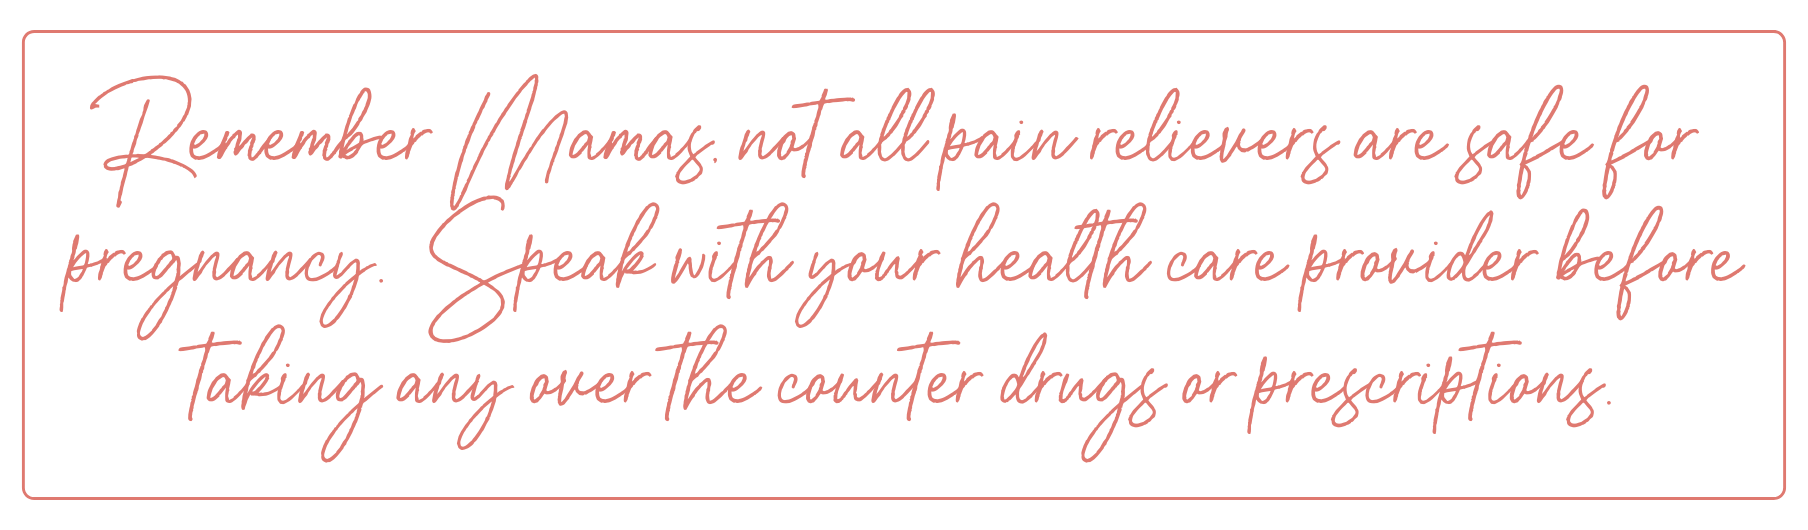 Consult Your Doctor before taking over the counter or prescription pain meds while pregnant